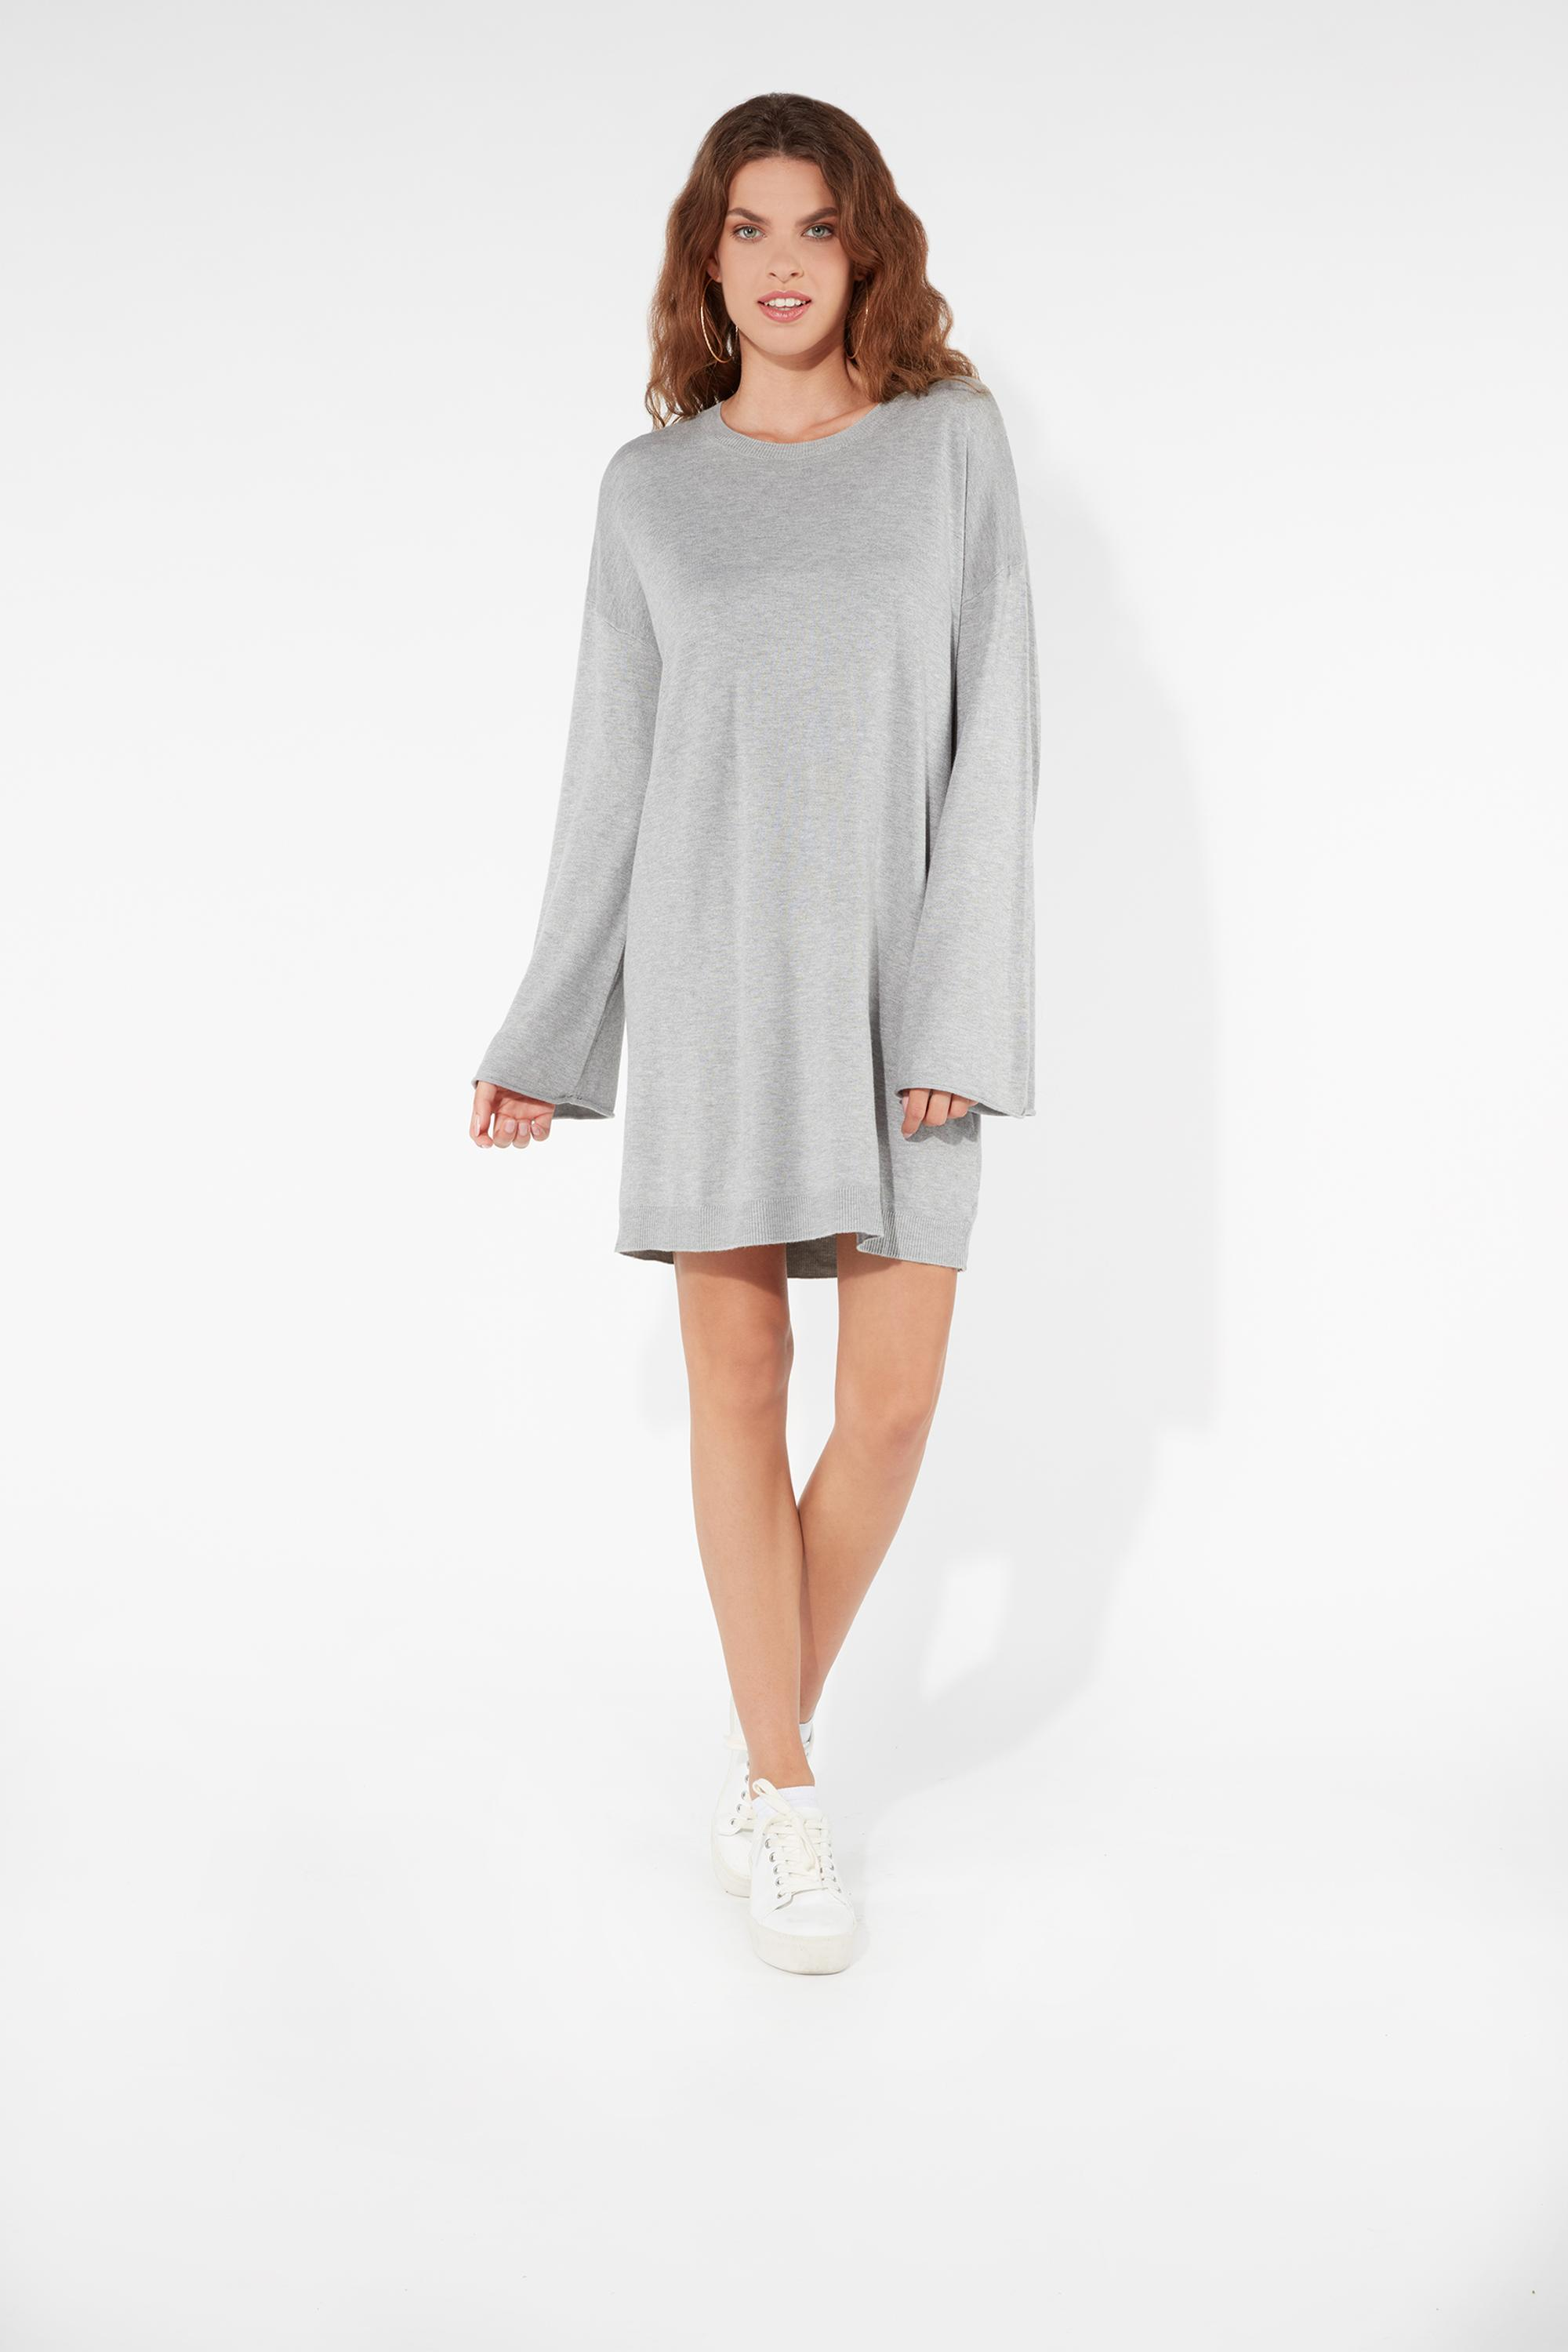 c66bc3599d7 Long-Sleeved Oversized Jumper Dress - Tezenis